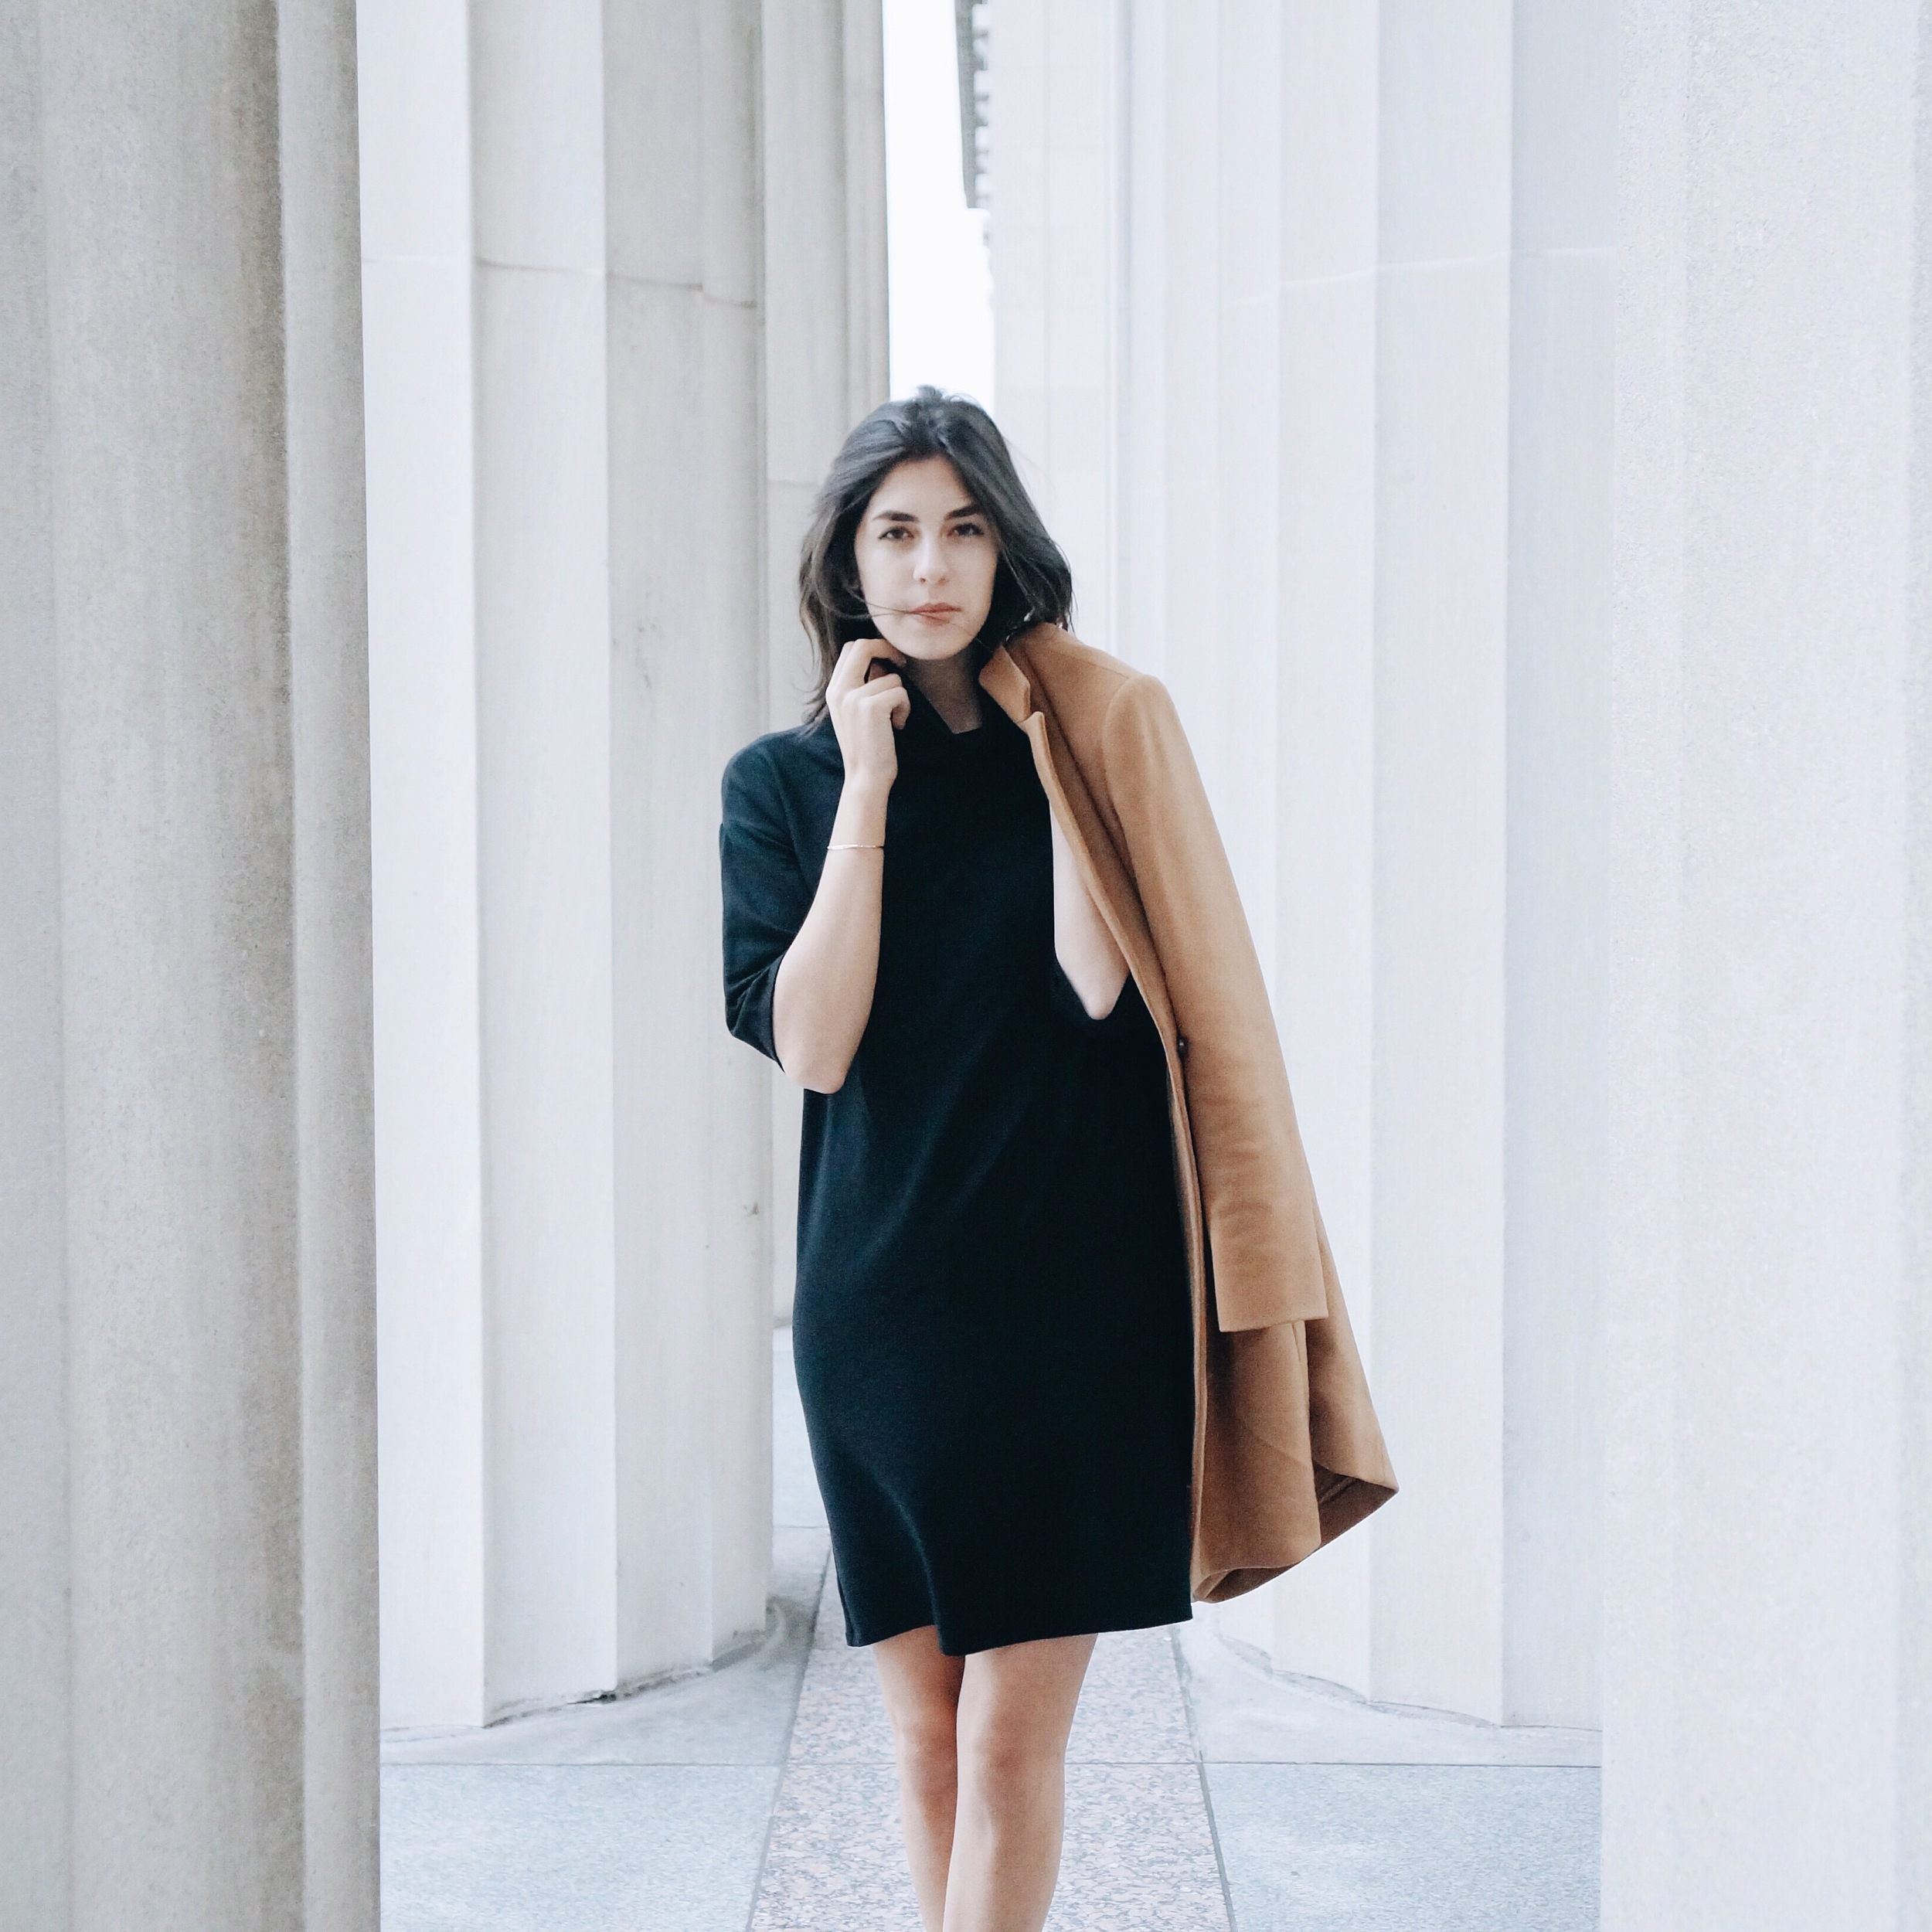 Jordana Claudia of  Jordana Claudia  wearing the Fleece Dress